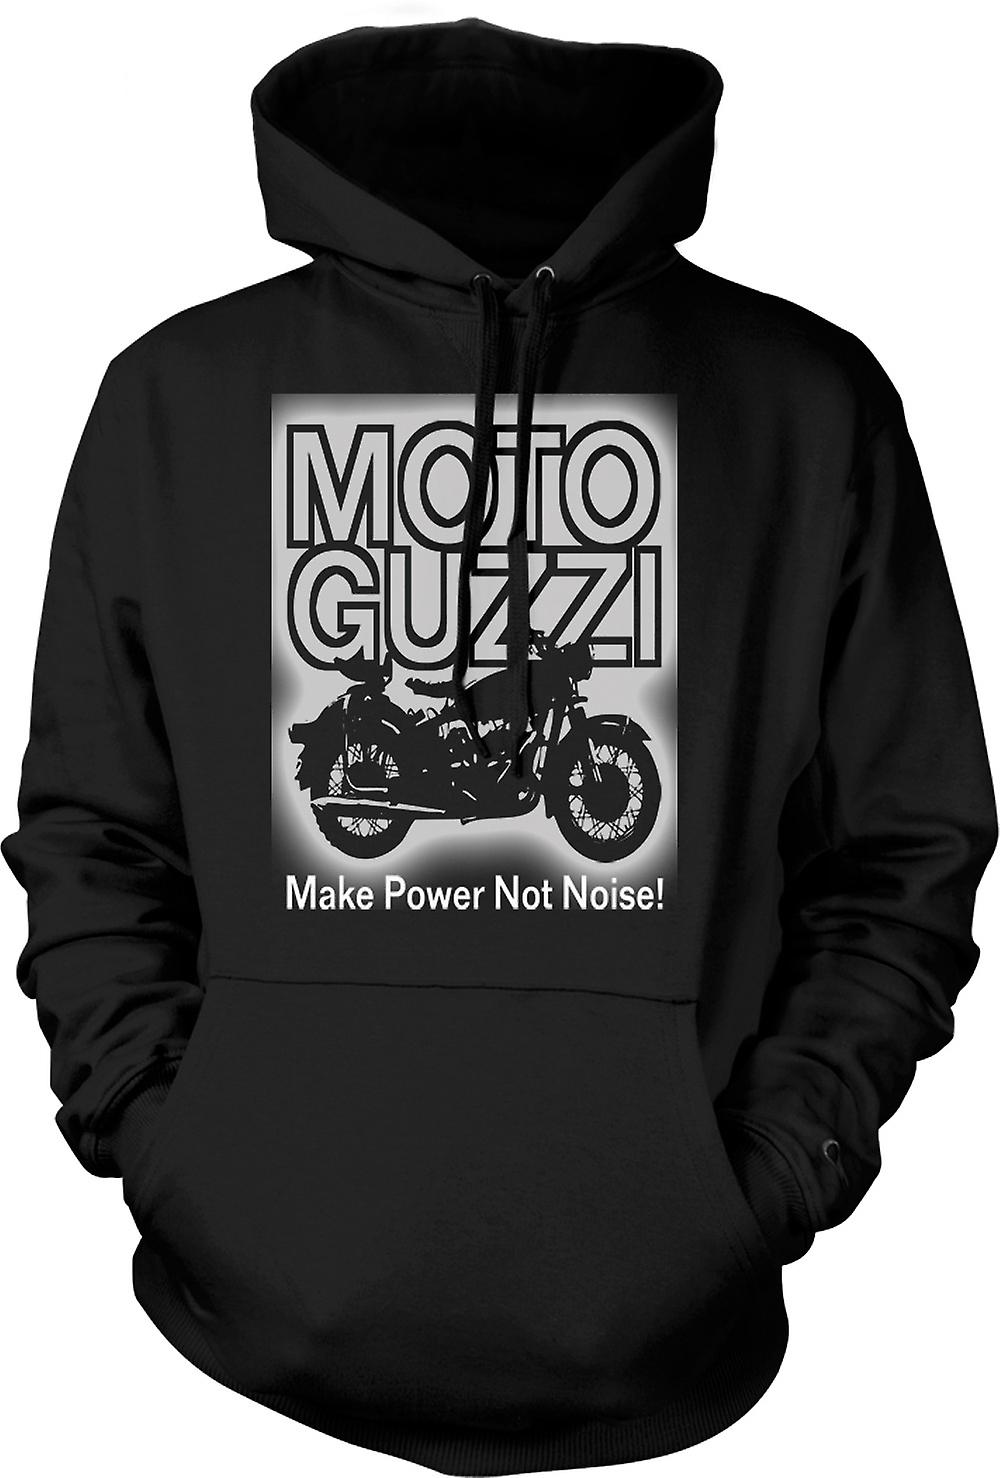 Mens Hoodie - Moto Guzzi Make Power Not Noise